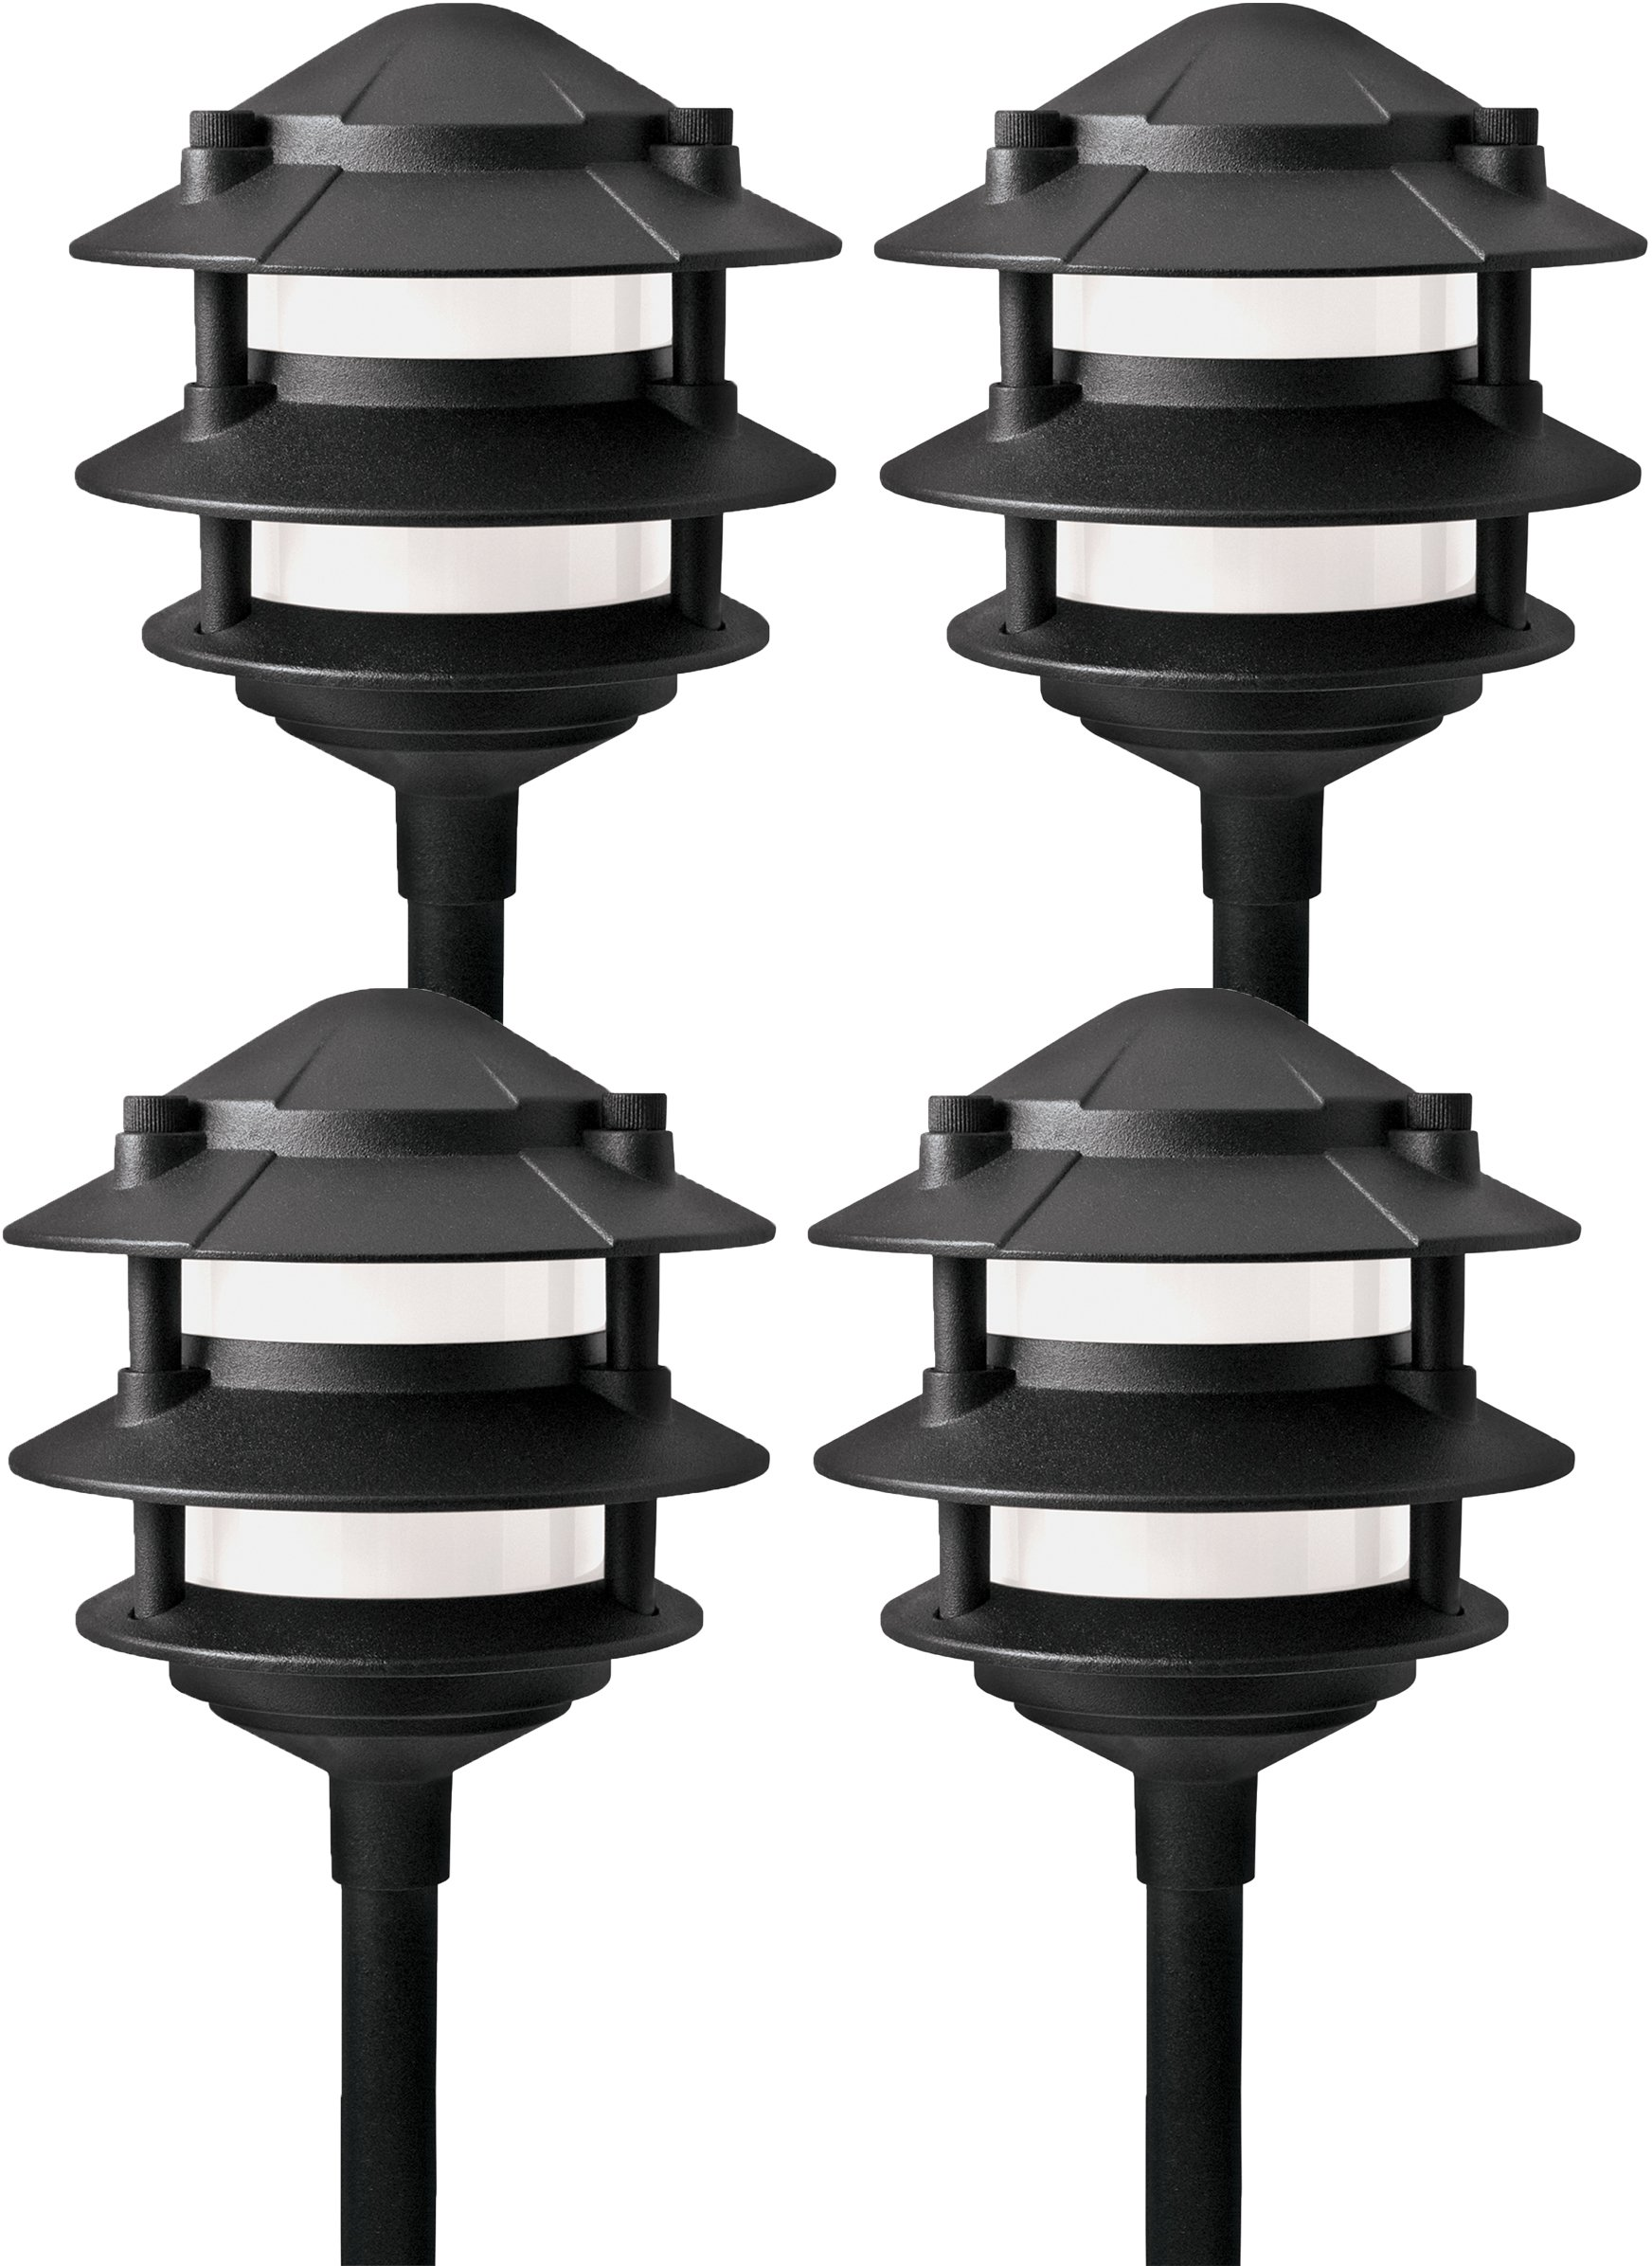 Paradise GL22764 Low Voltage Cast Aluminum 11W Path Light (Black, 4 Pack) by Paradise